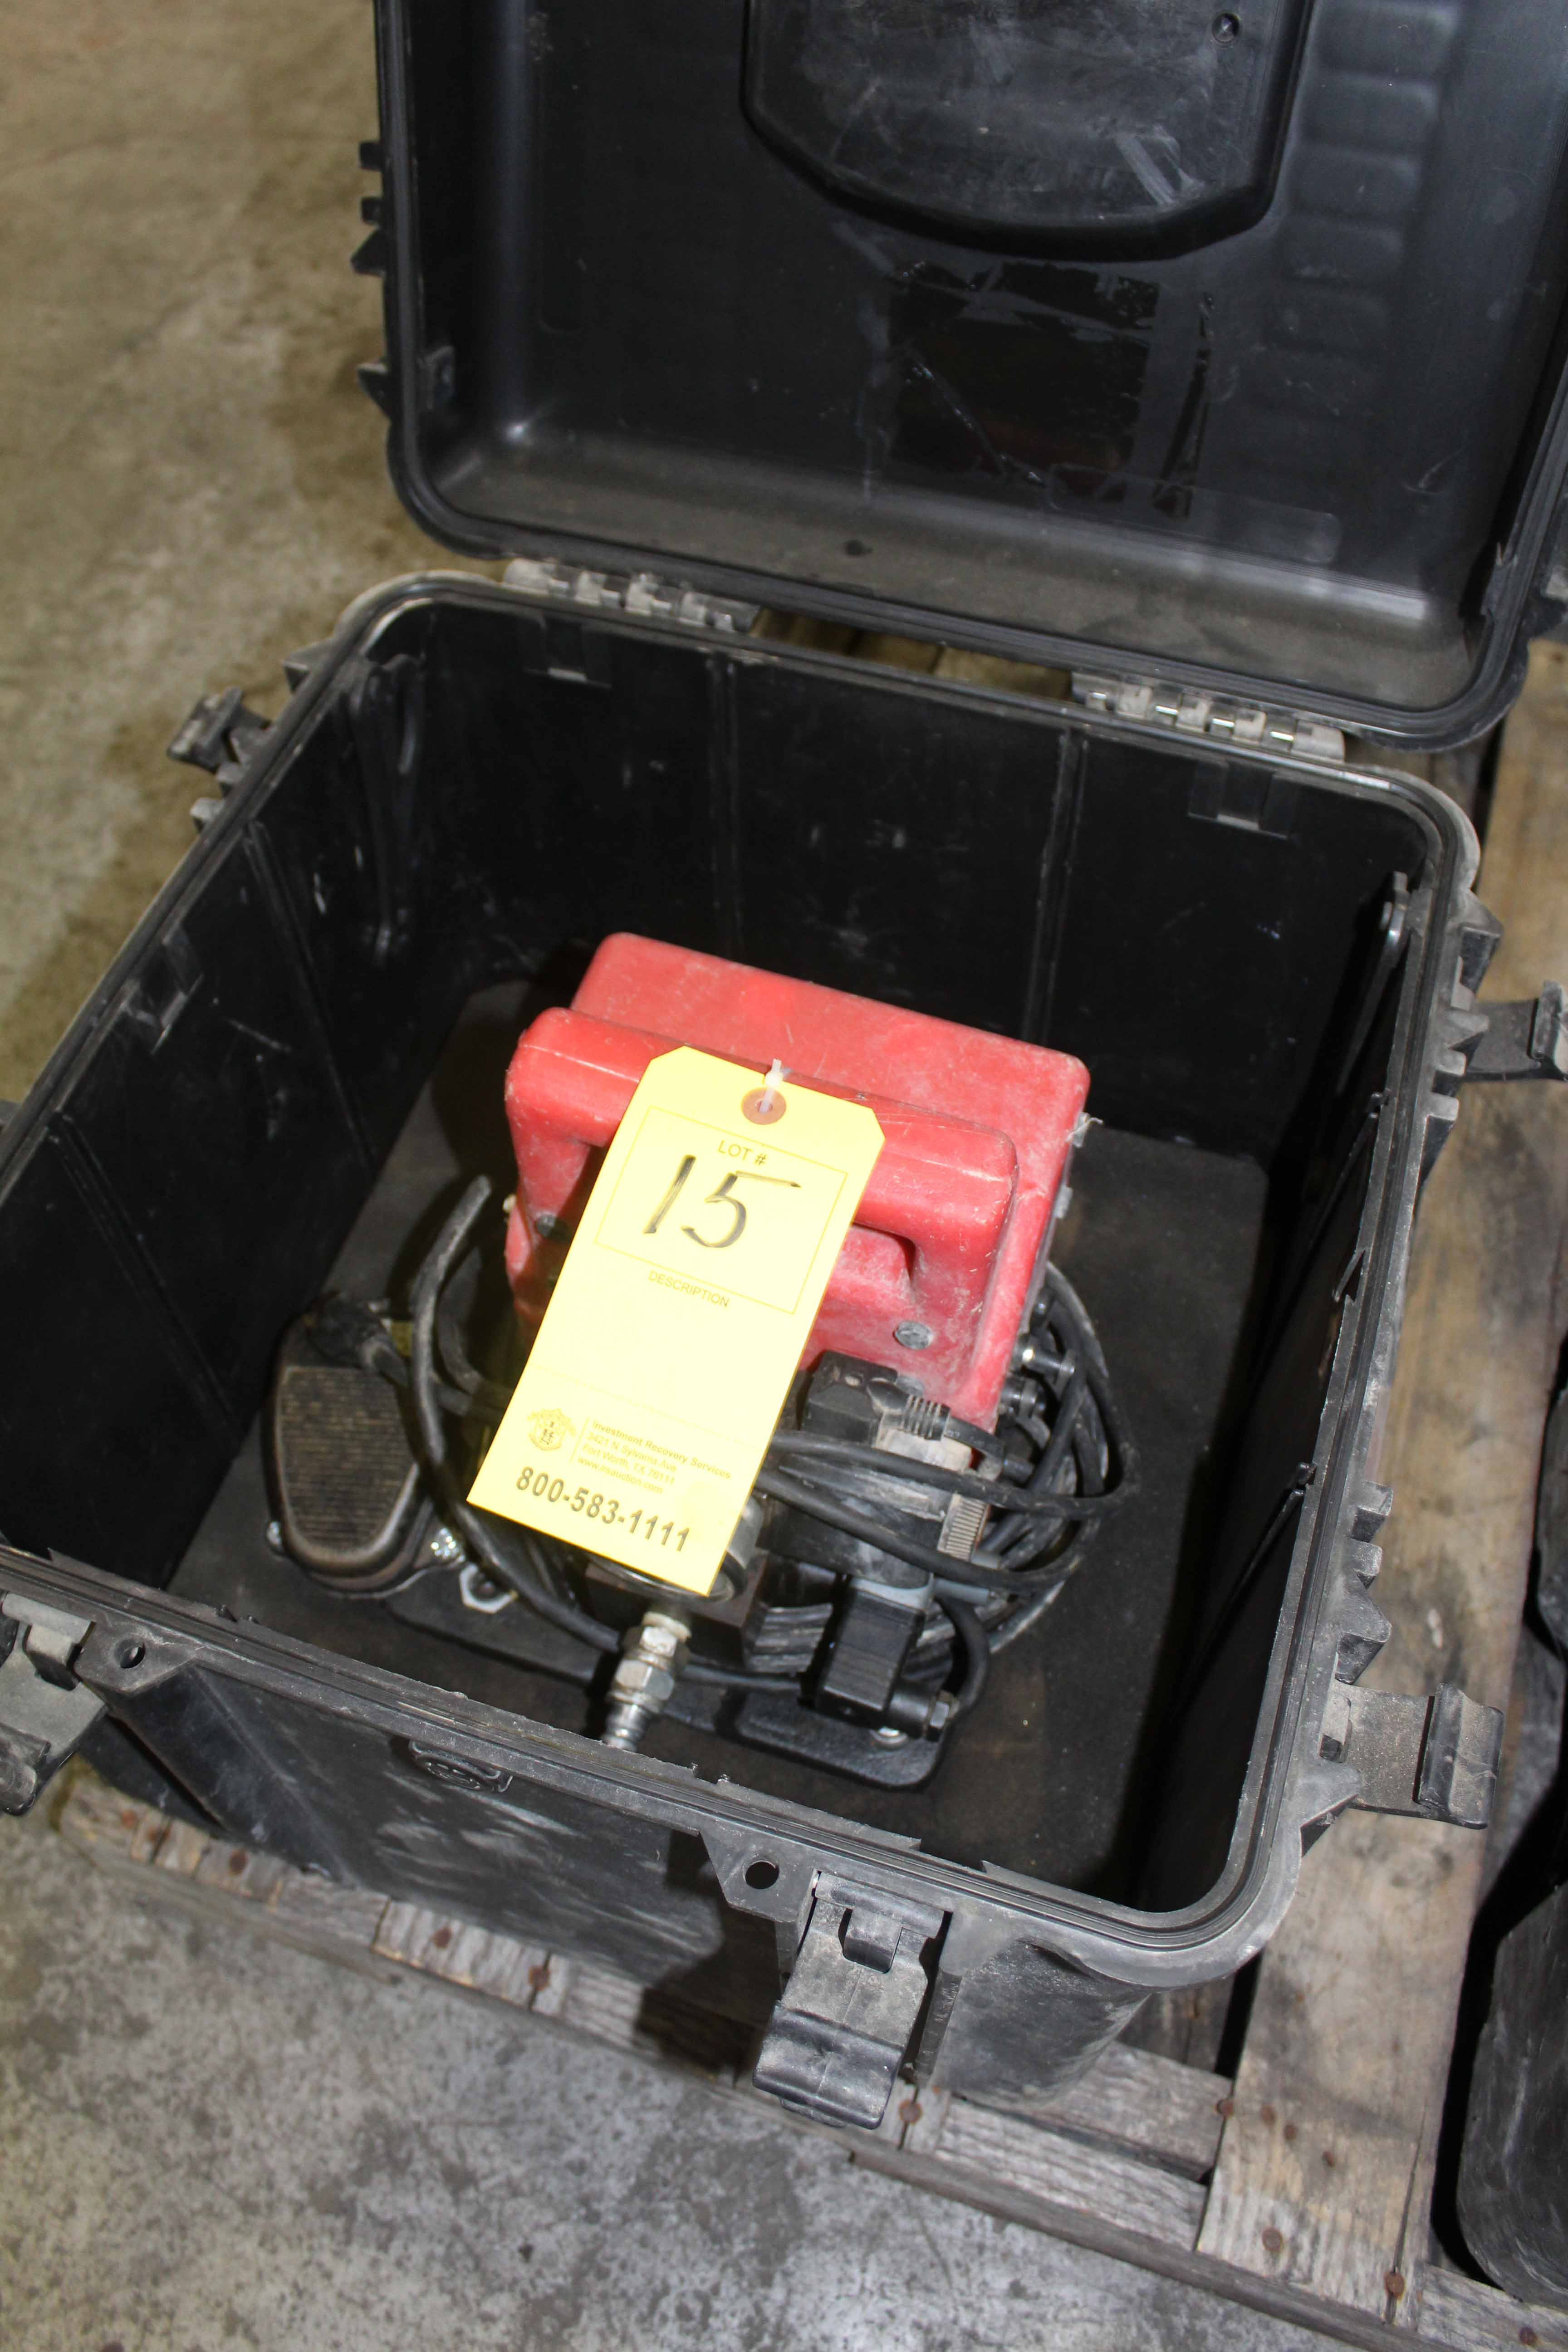 Lot 15 - PORTABLE ELECTRIC PUMP, ENERPAC MDL. L2062, 1/2 HP, w/case